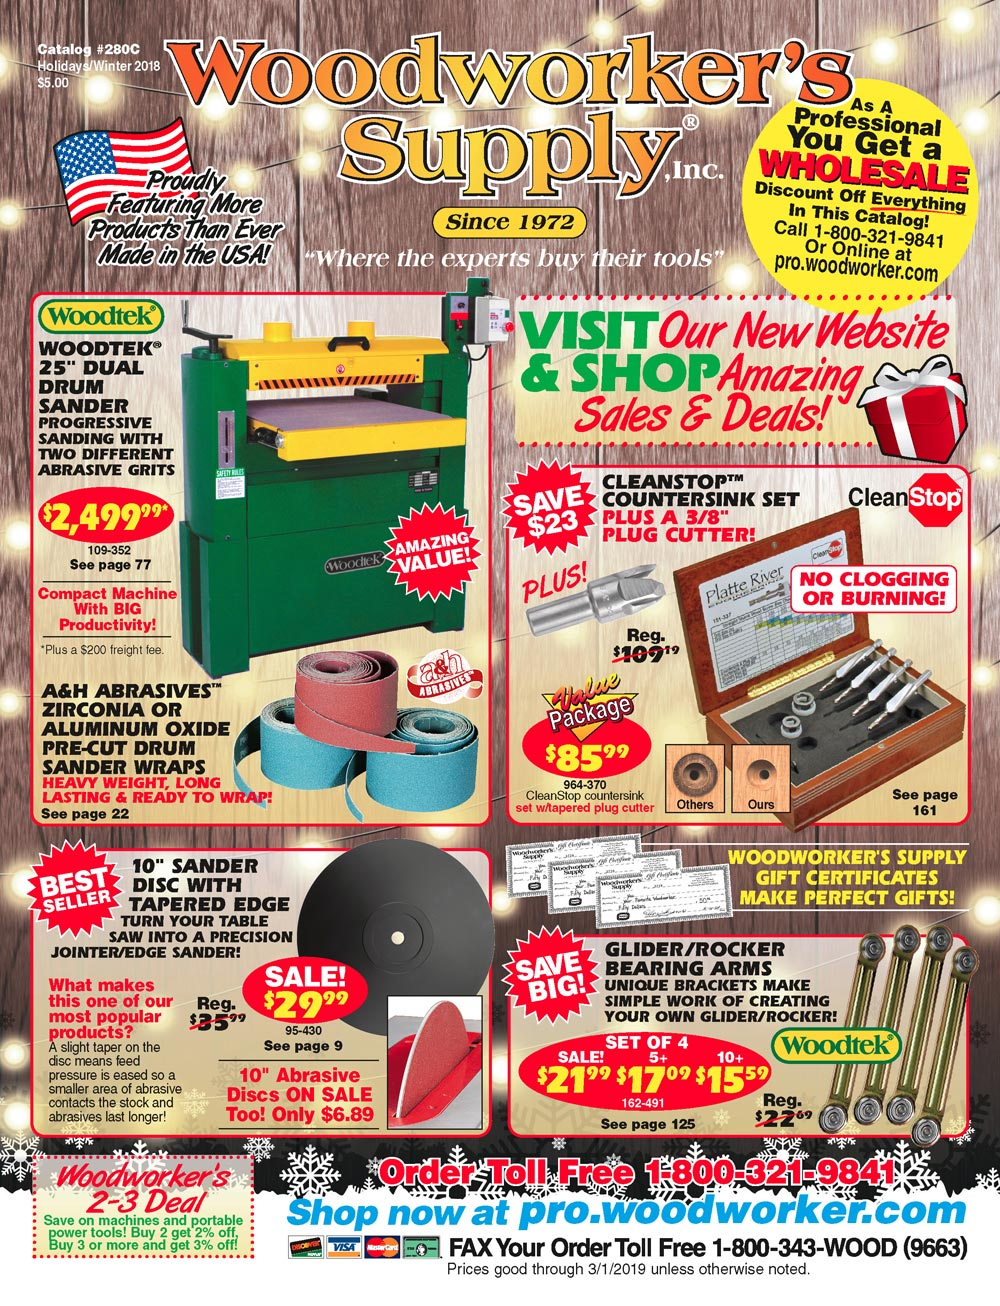 Woodworkers Supply Inc